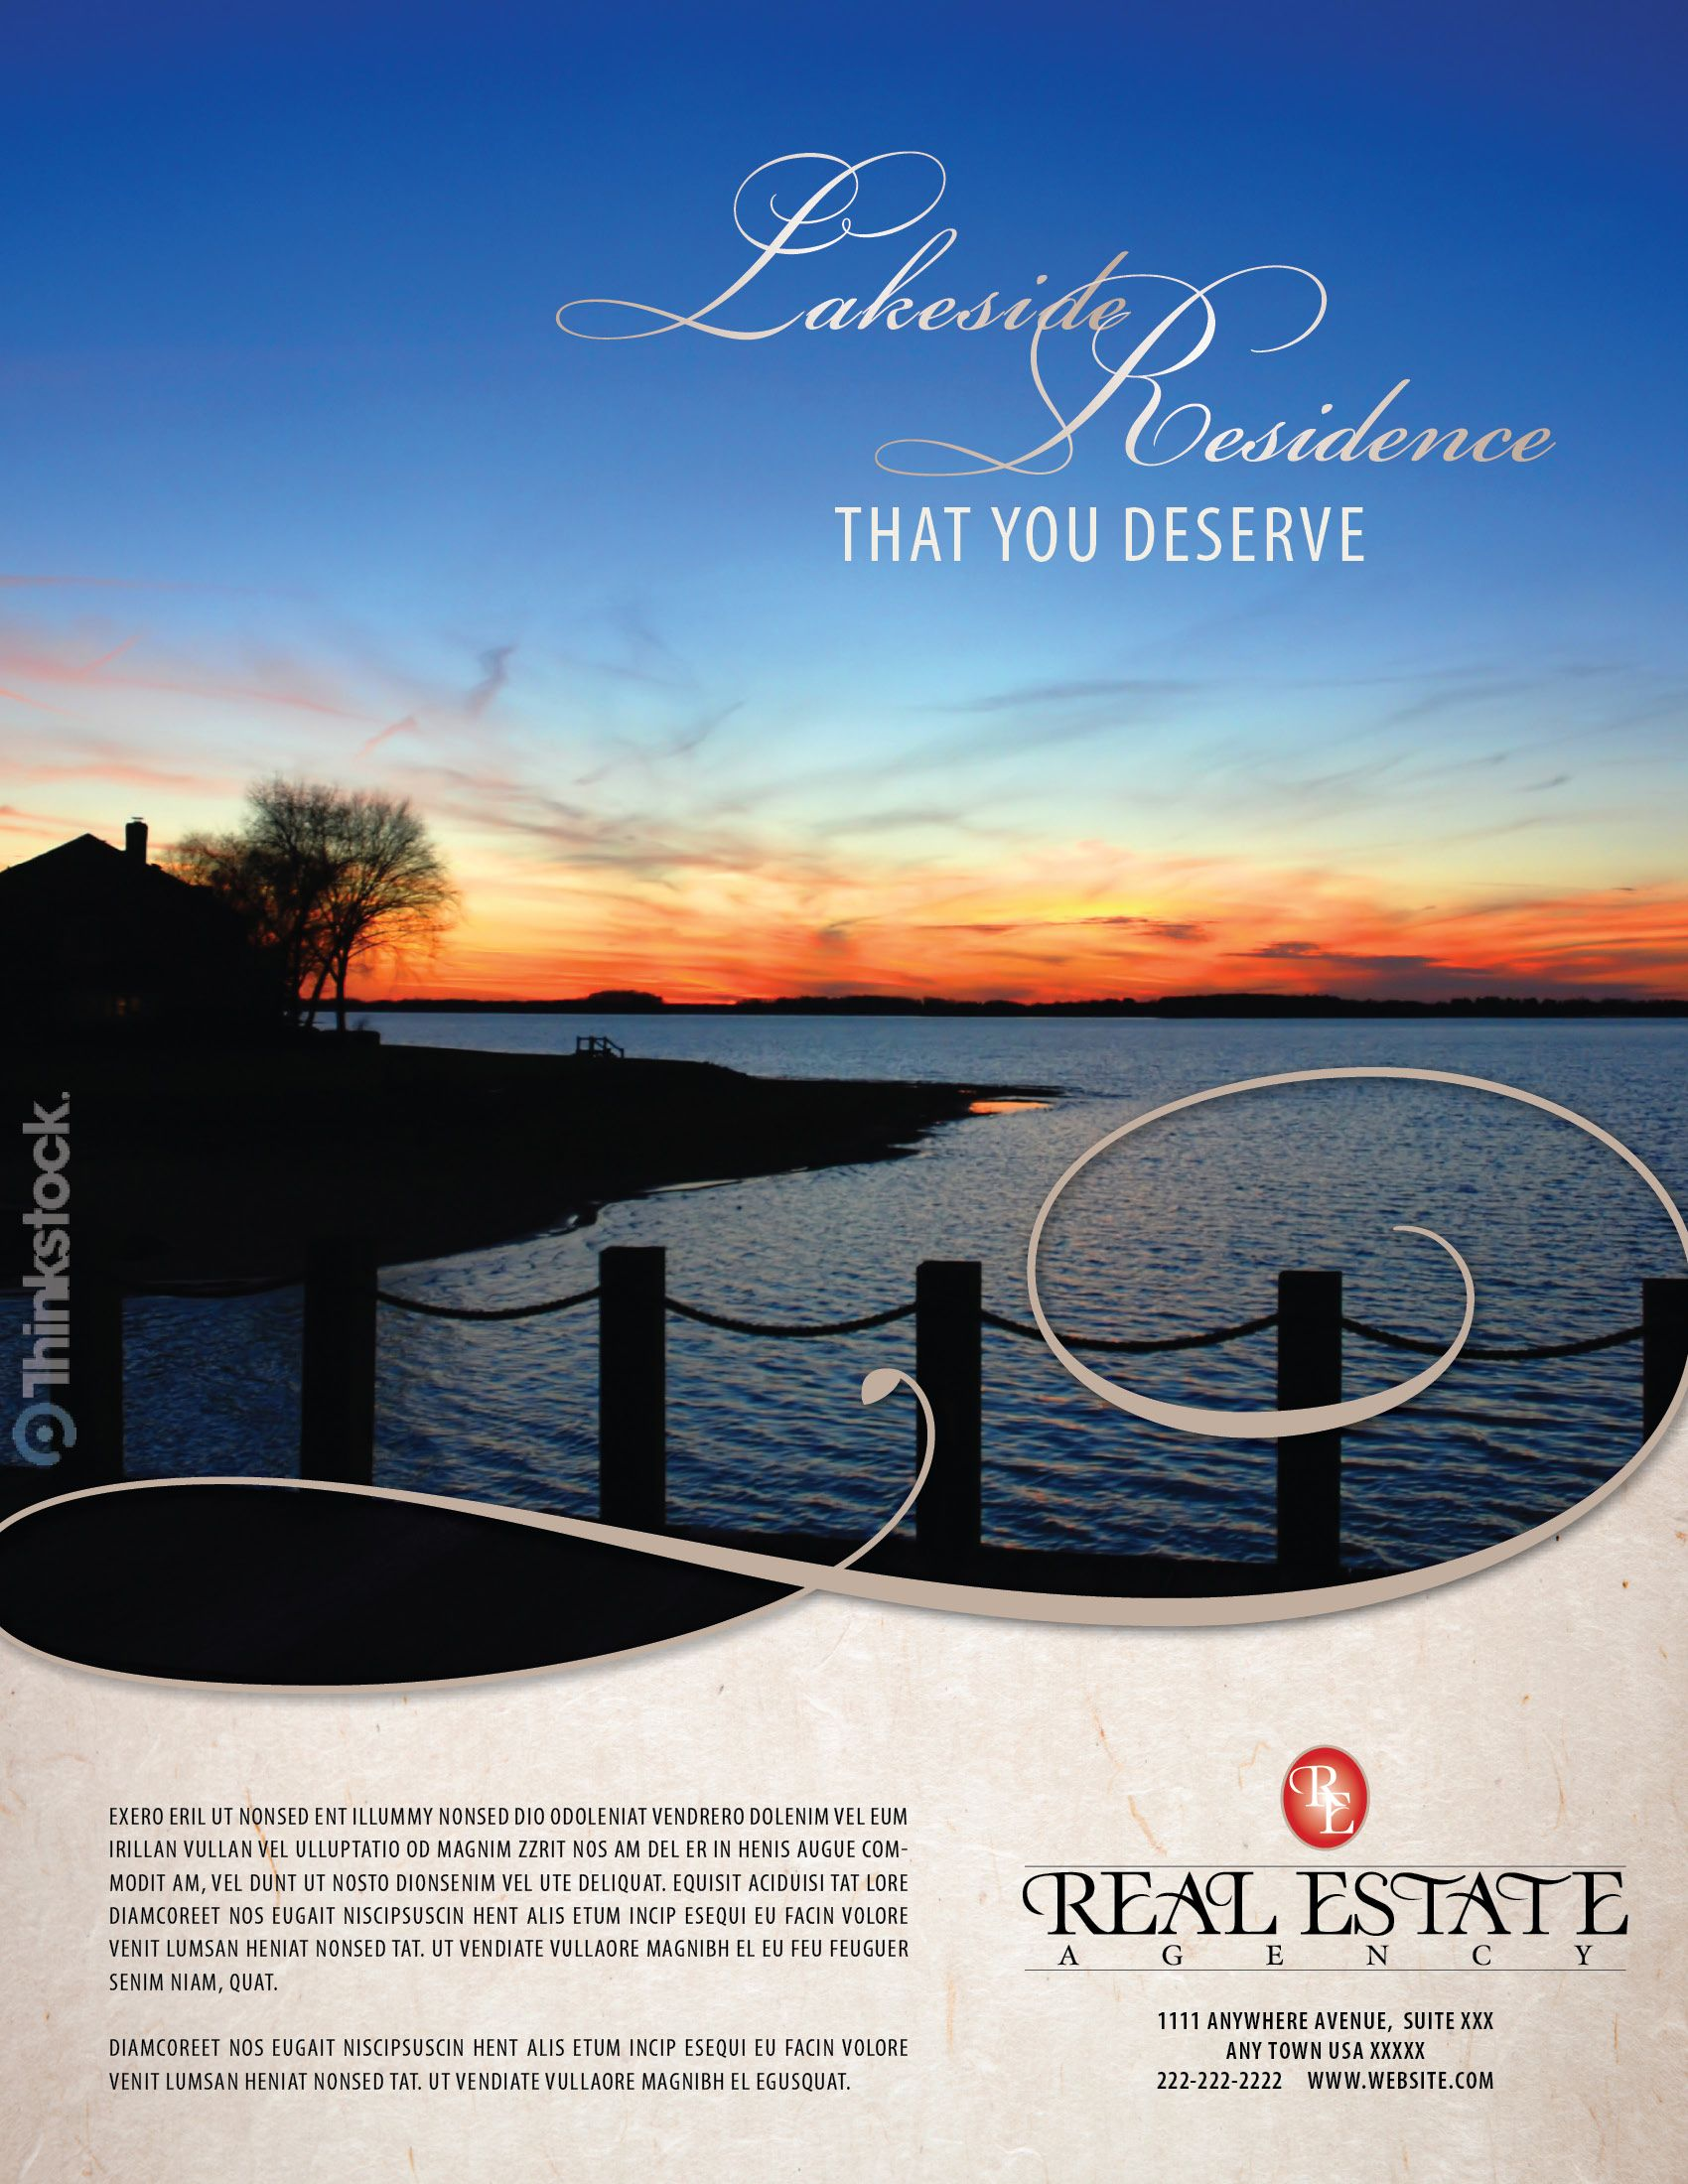 1000+ images about real estate ads on Pinterest | Corporate ...